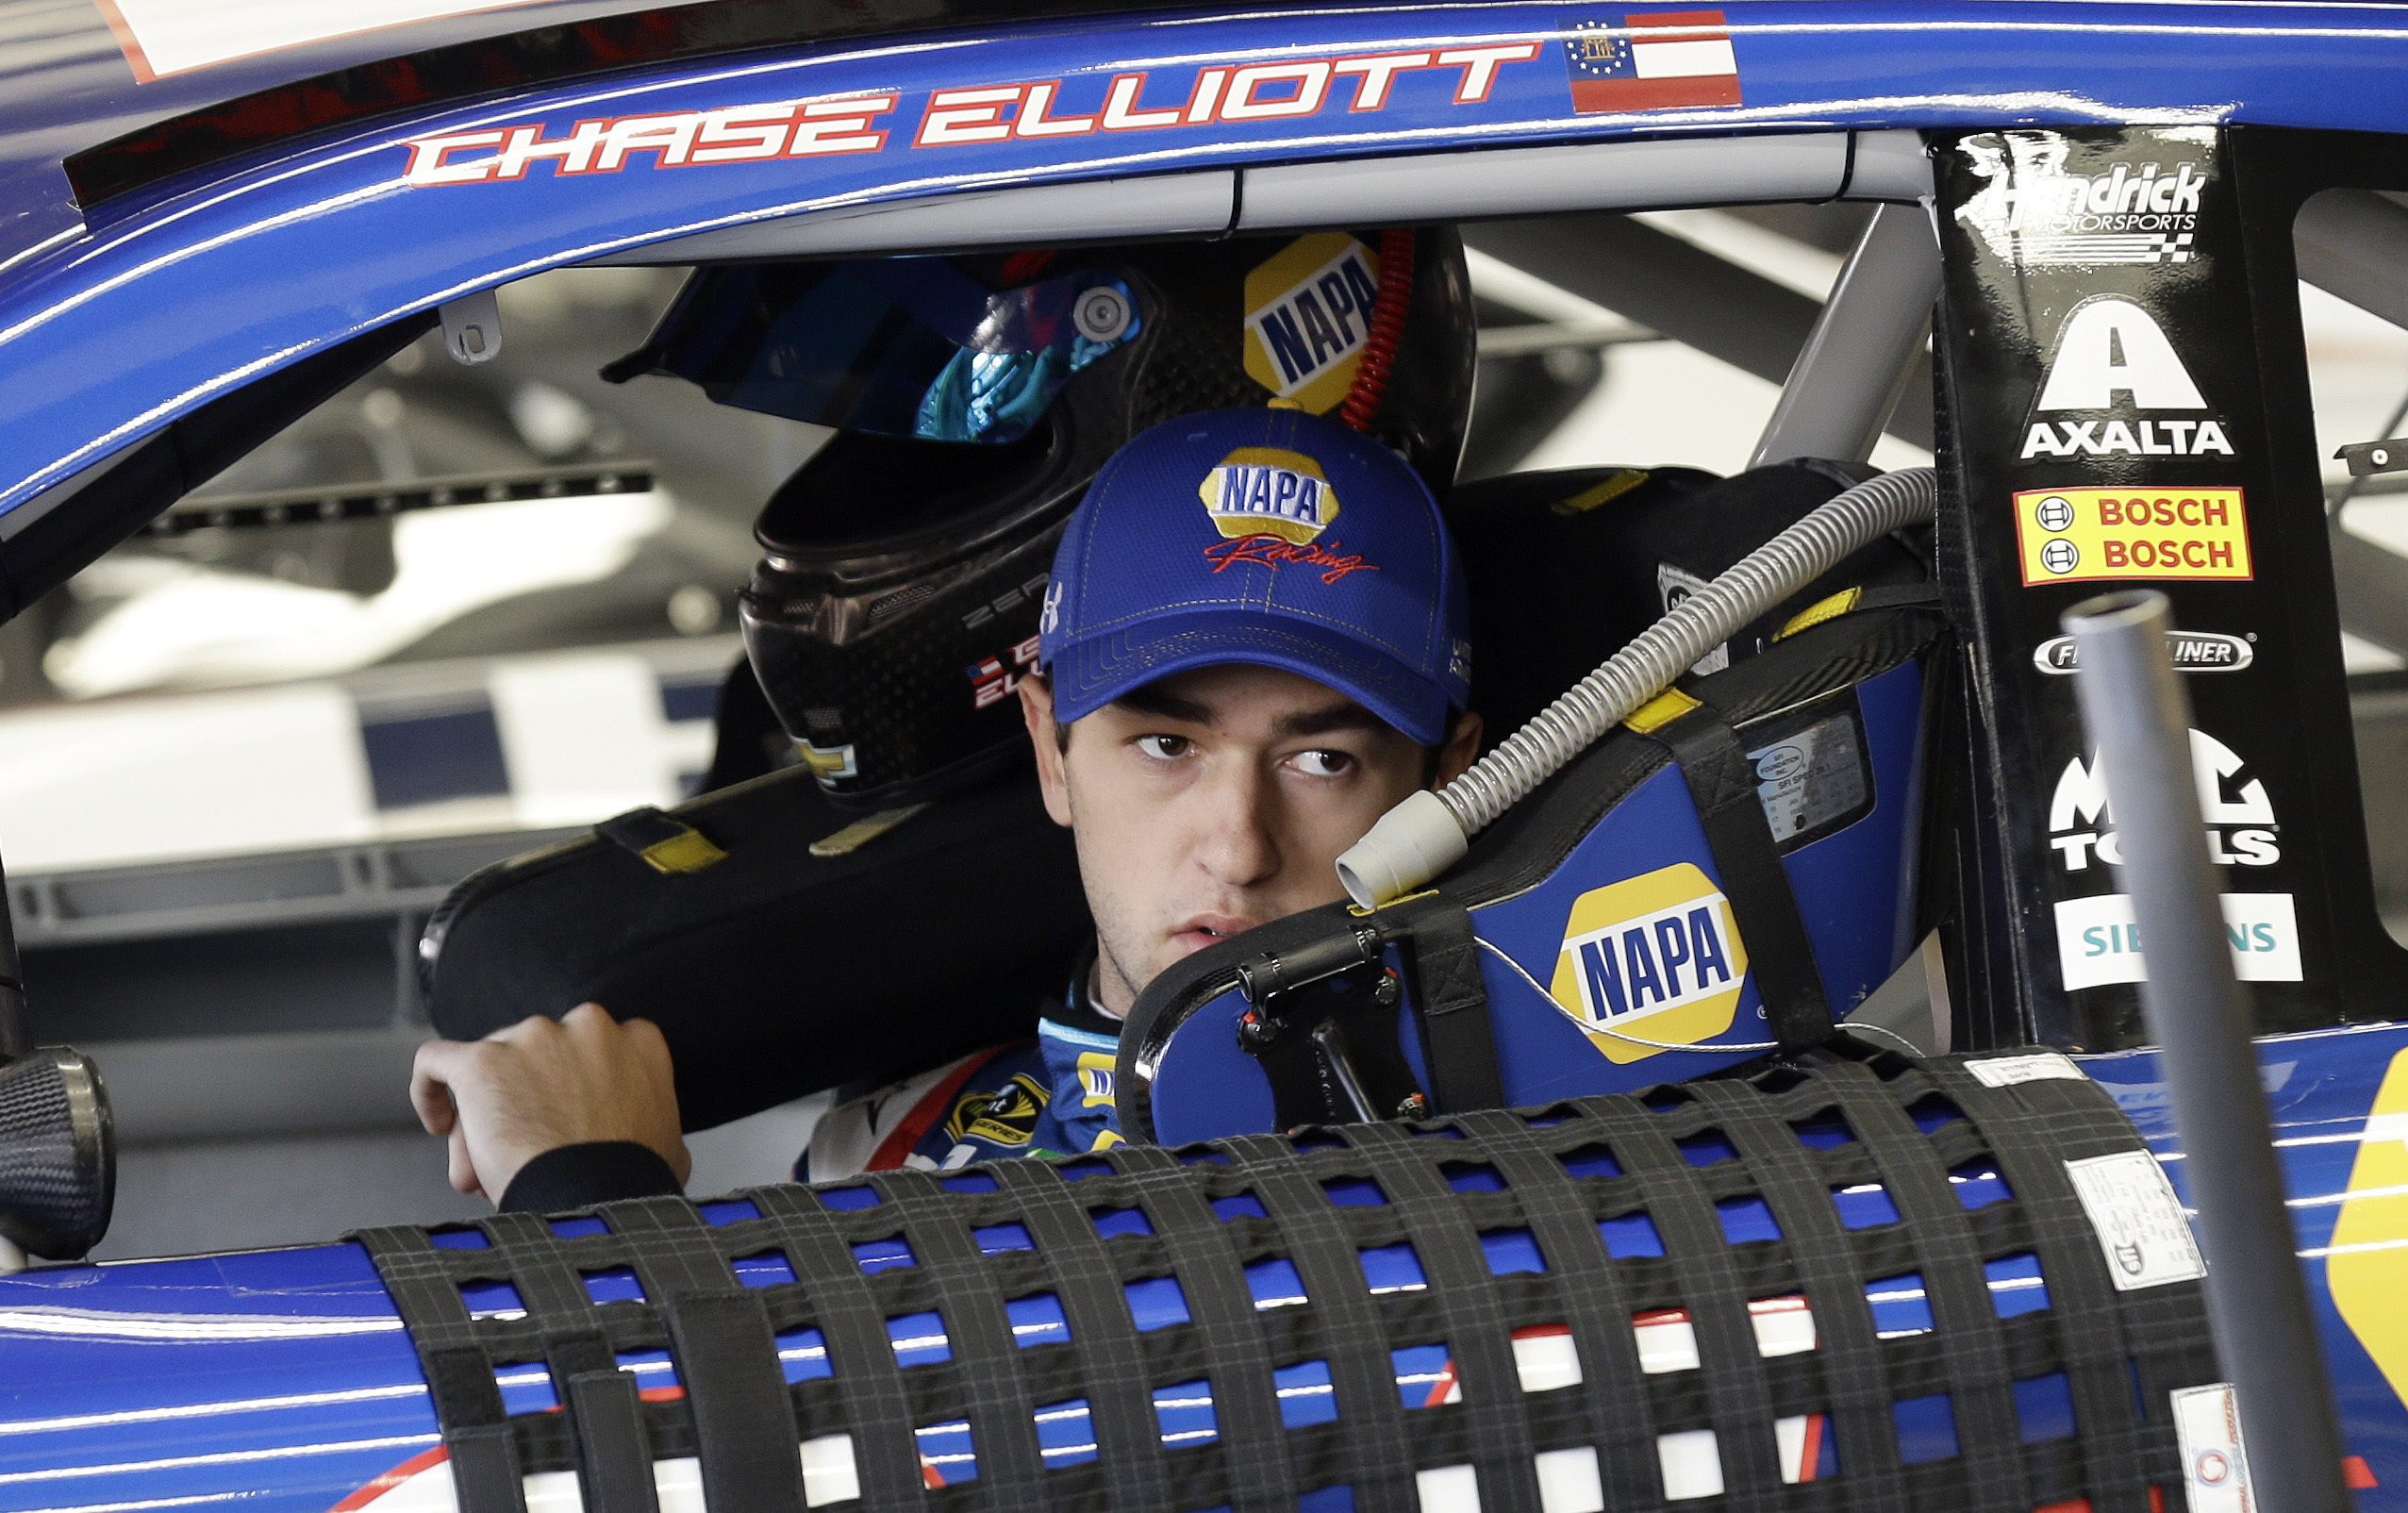 Chase Elliott waits in his car prior to practice for Sunday's NASCAR Sprint Cup Series auto race at the Charlotte Motor Speedway in Concord, N.C., Saturday, May 28, 2016. (AP Photo/Gerry Broome)